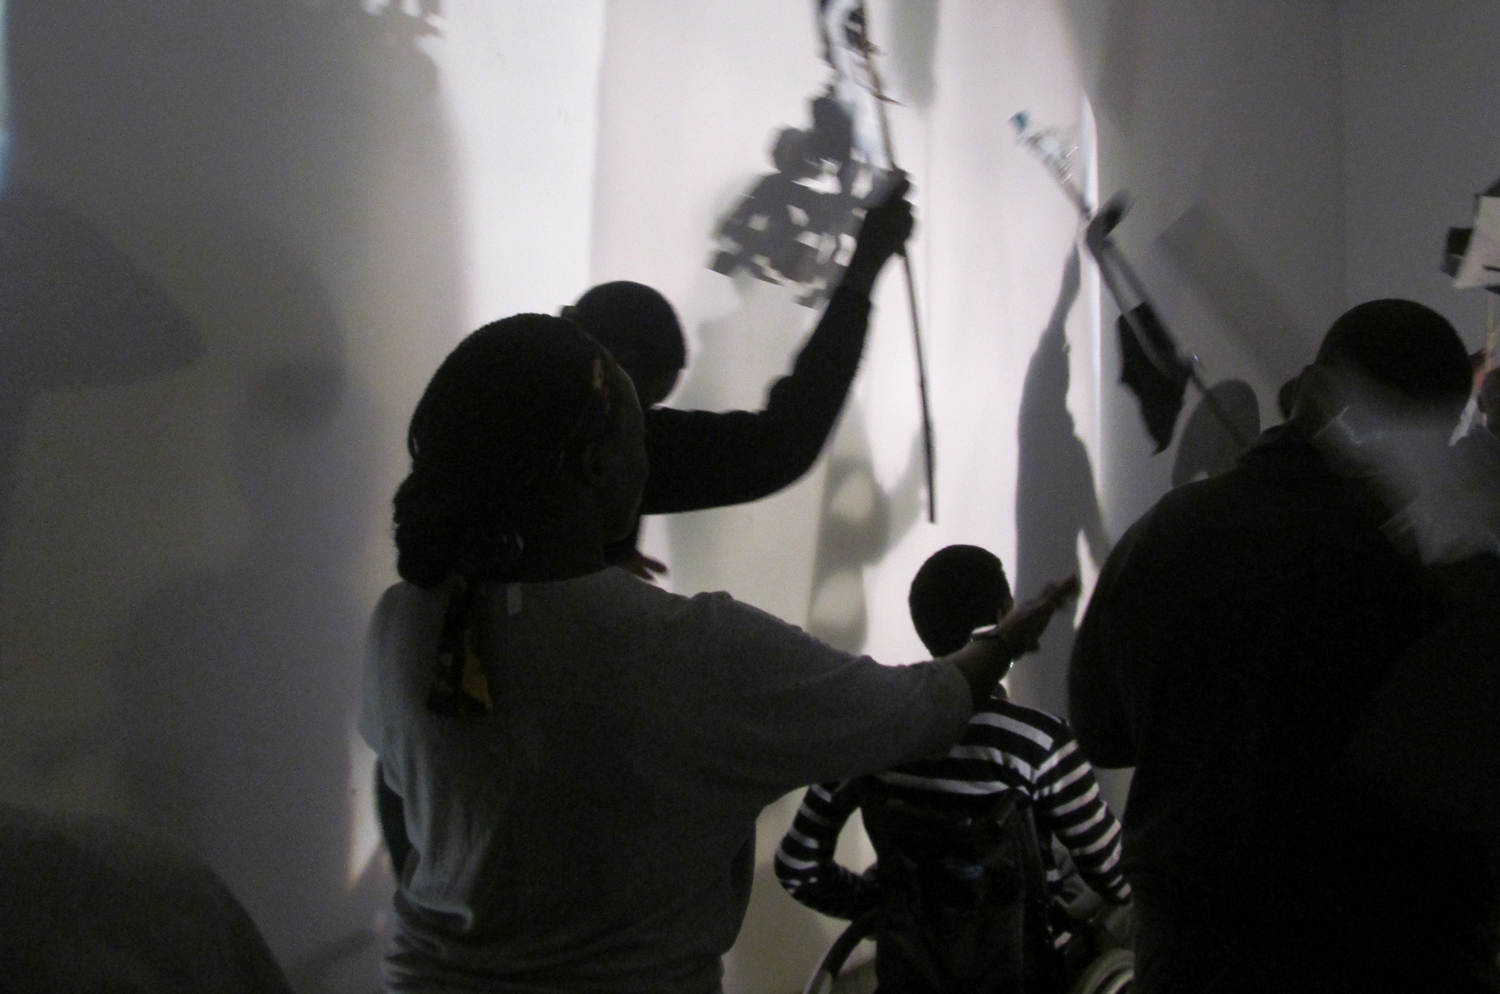 This is a black and white image of several figures including a wheelchair-user facing away from the camera towards a brightly lit wall. The group are creating artful shadows on the wall with paper creations on sticks.